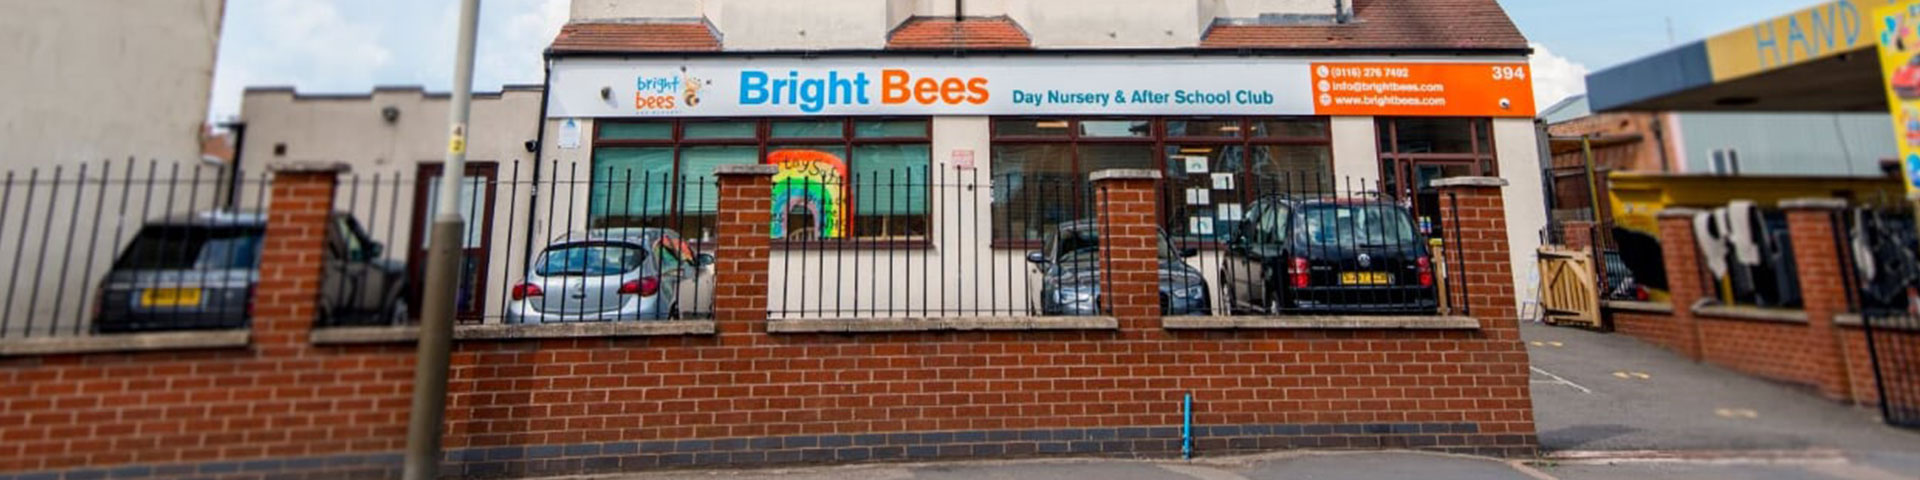 Bright Bees Day Nursery Gipsy Lane